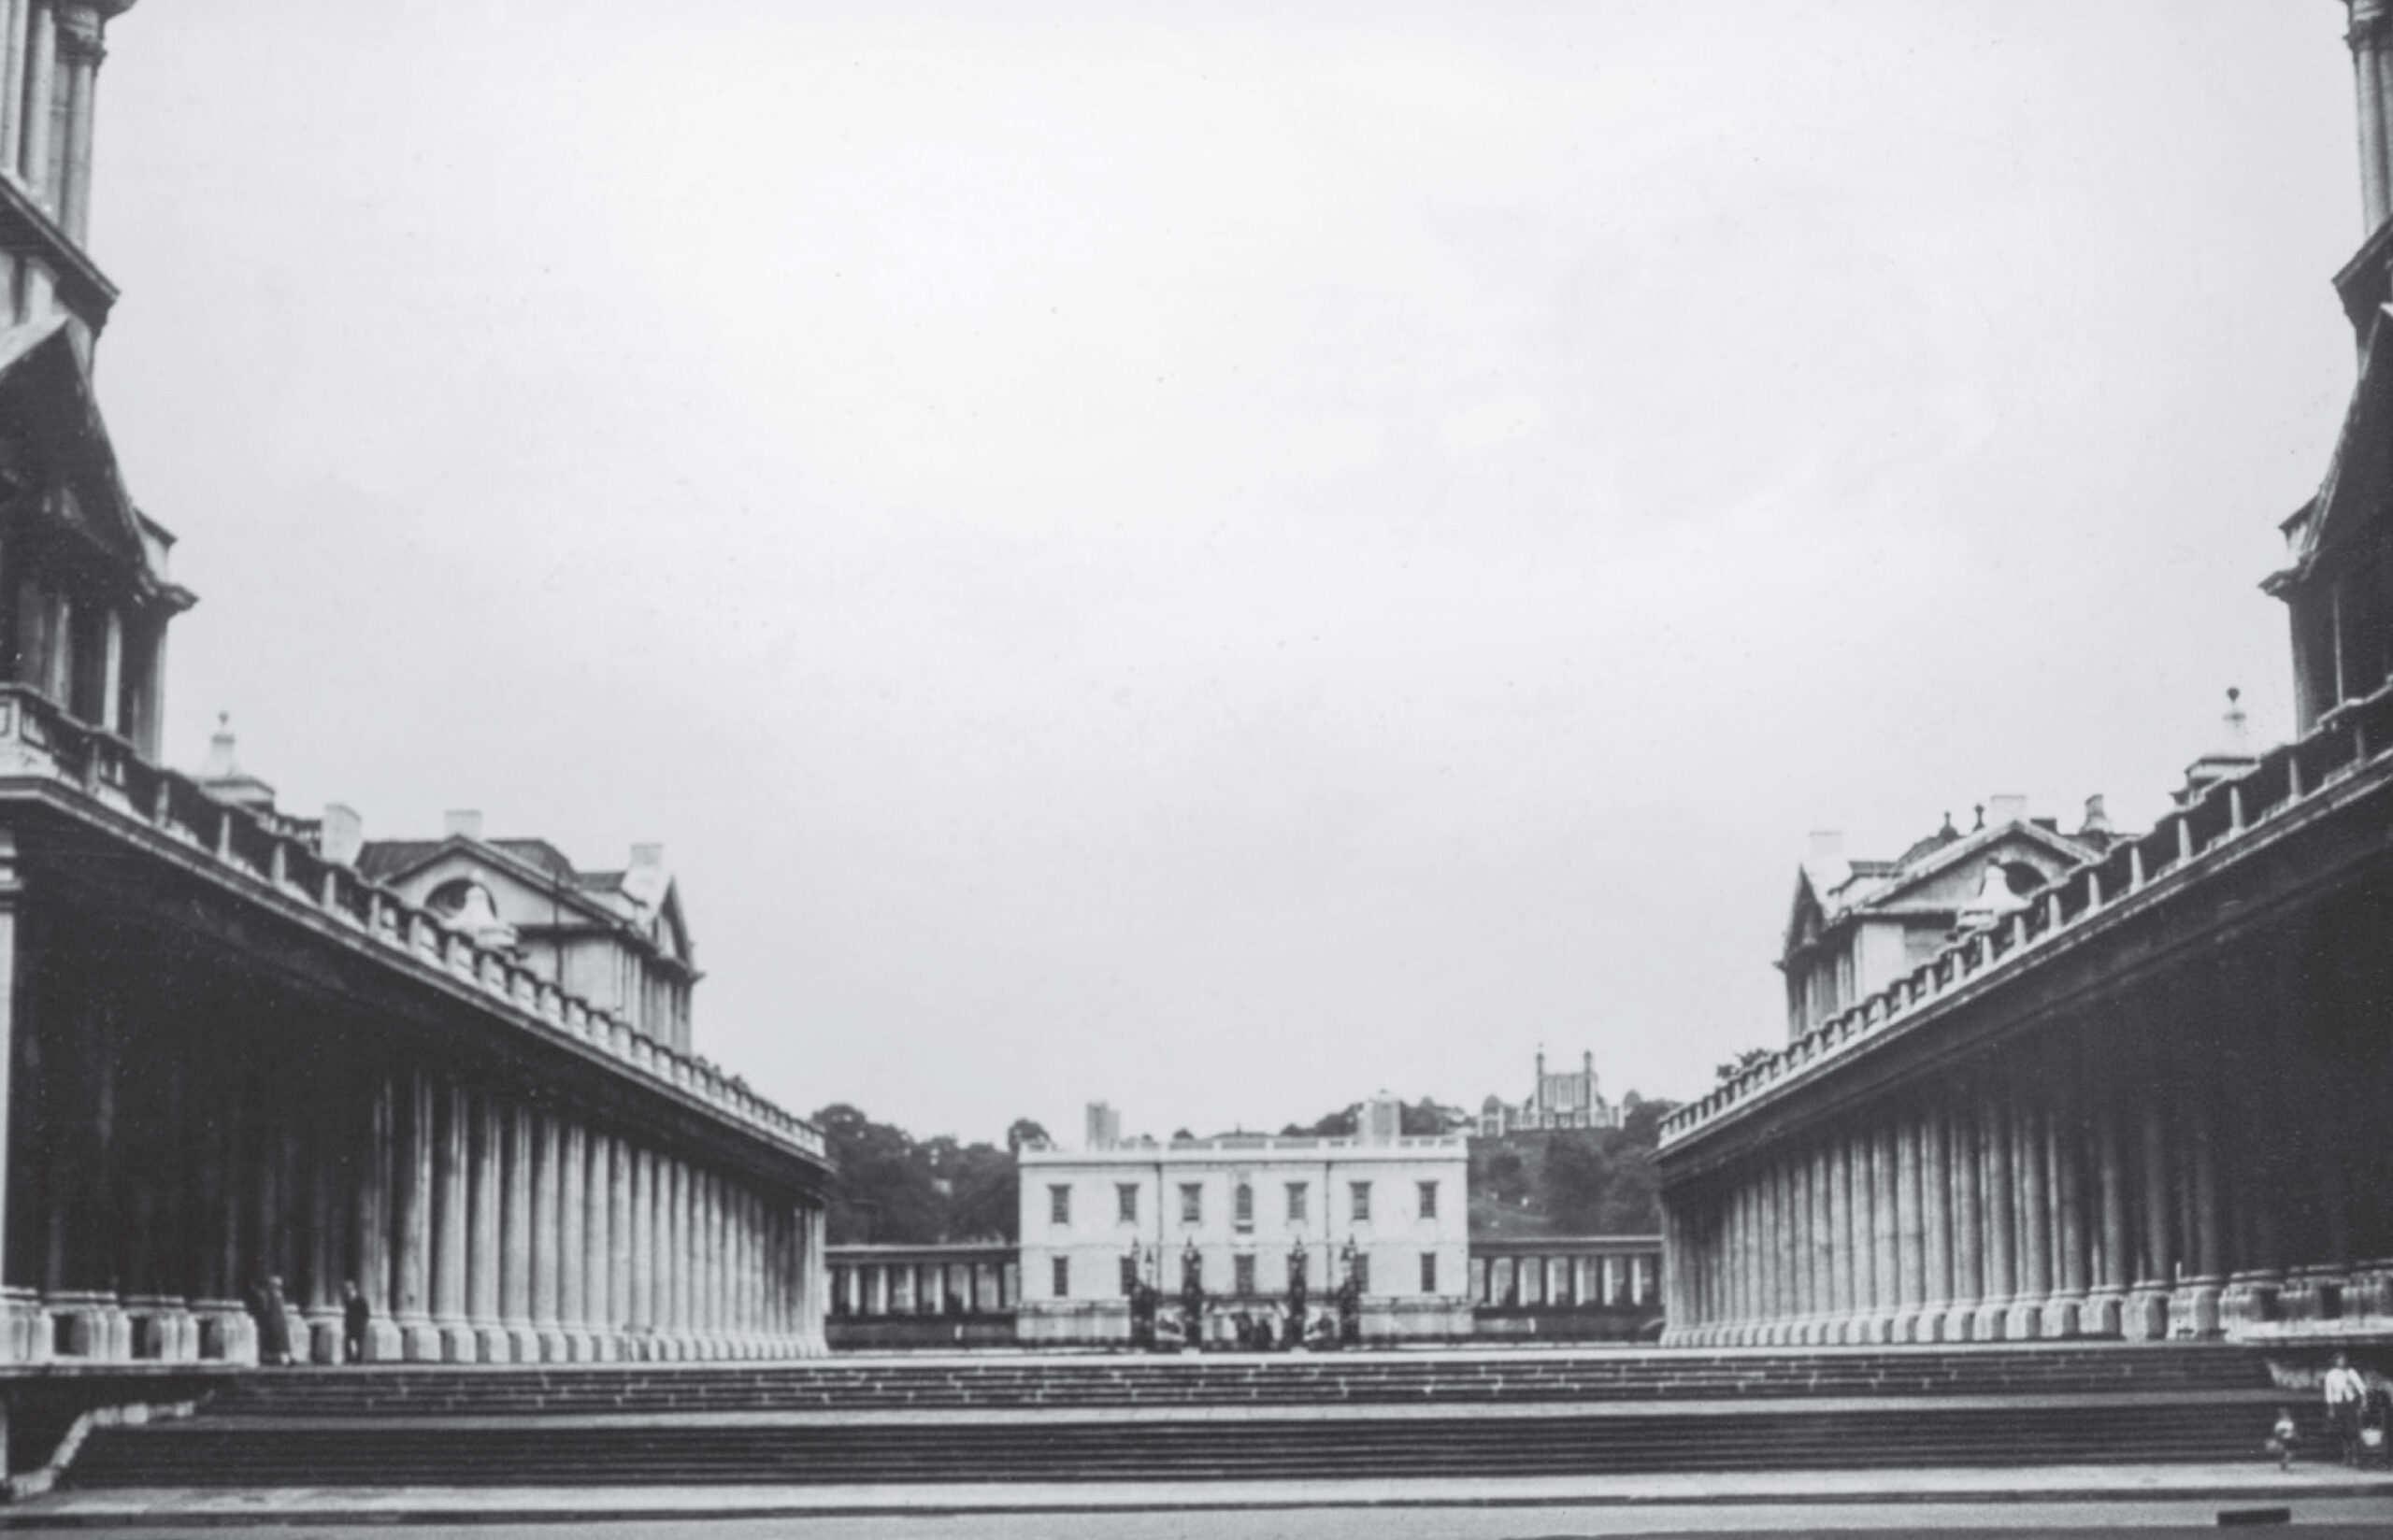 Royal Naval College and Queens House, Greenwich, London